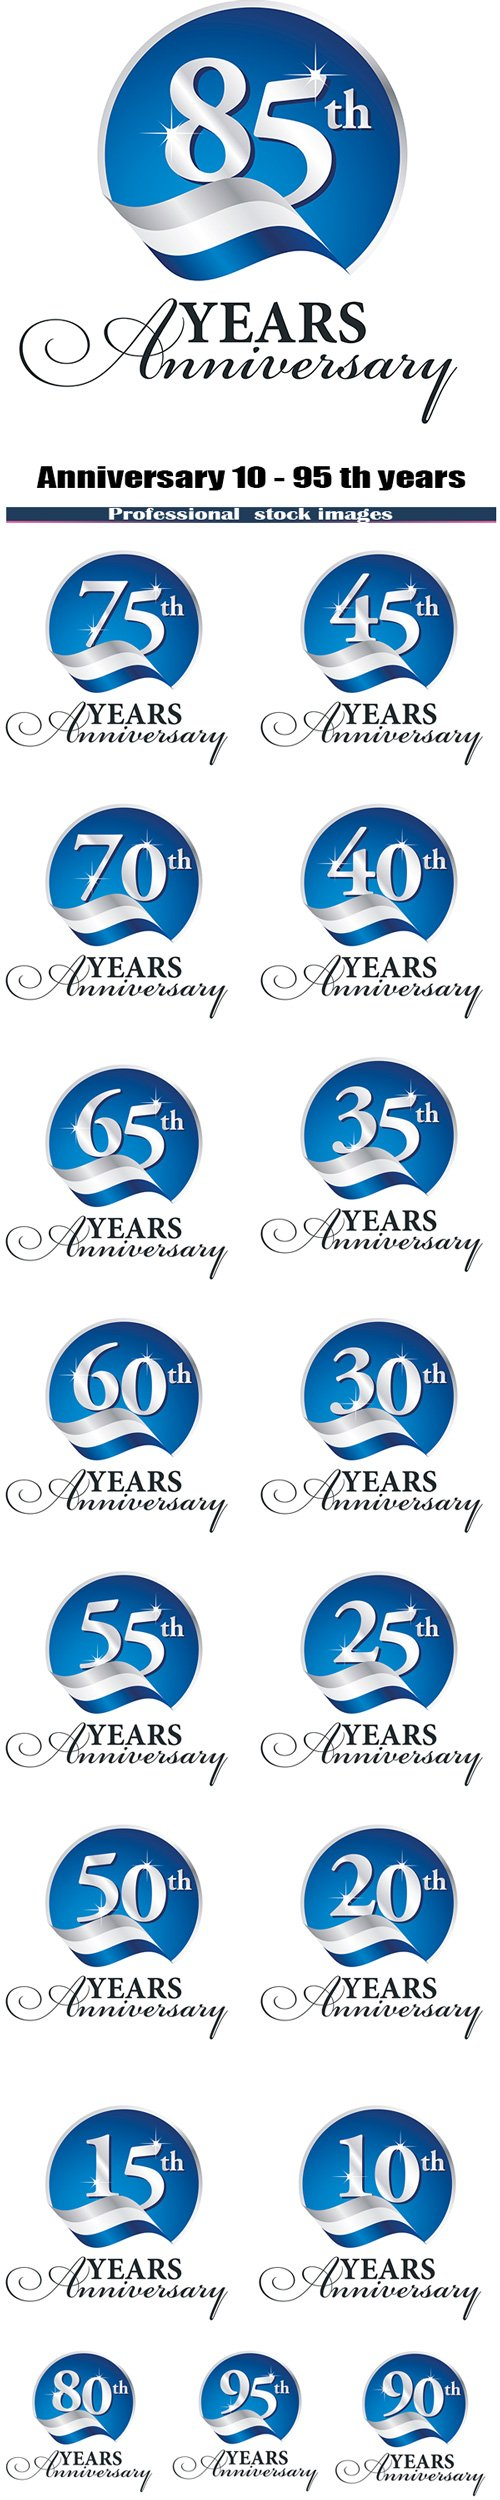 Anniversary 10 - 95 th years celebrating logo